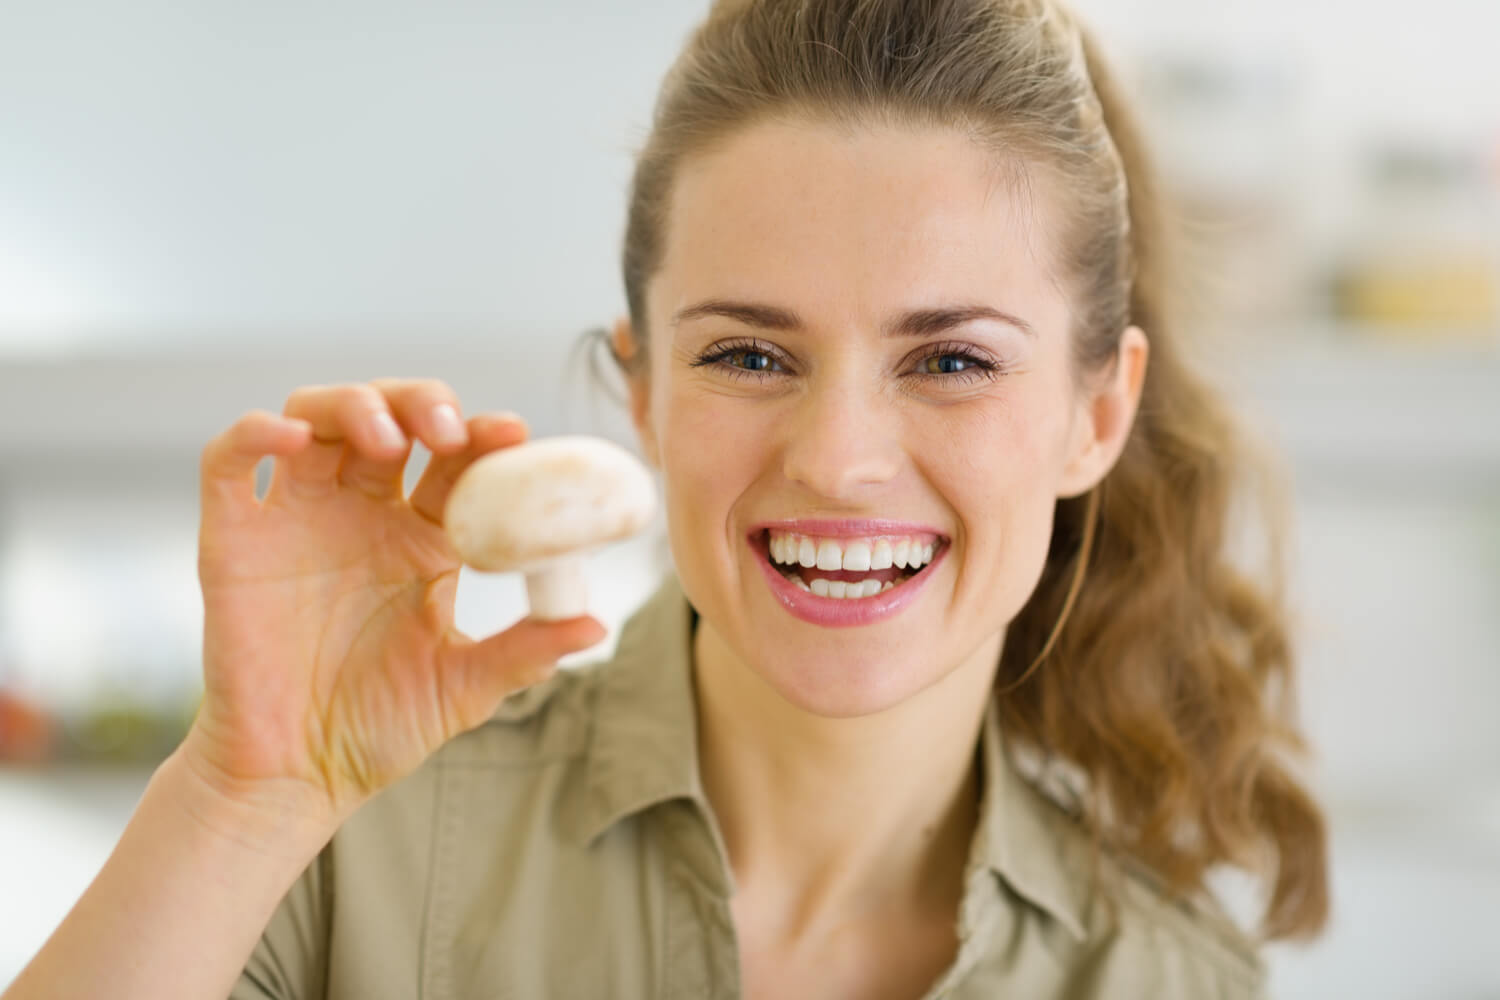 woman with mushroom smiling